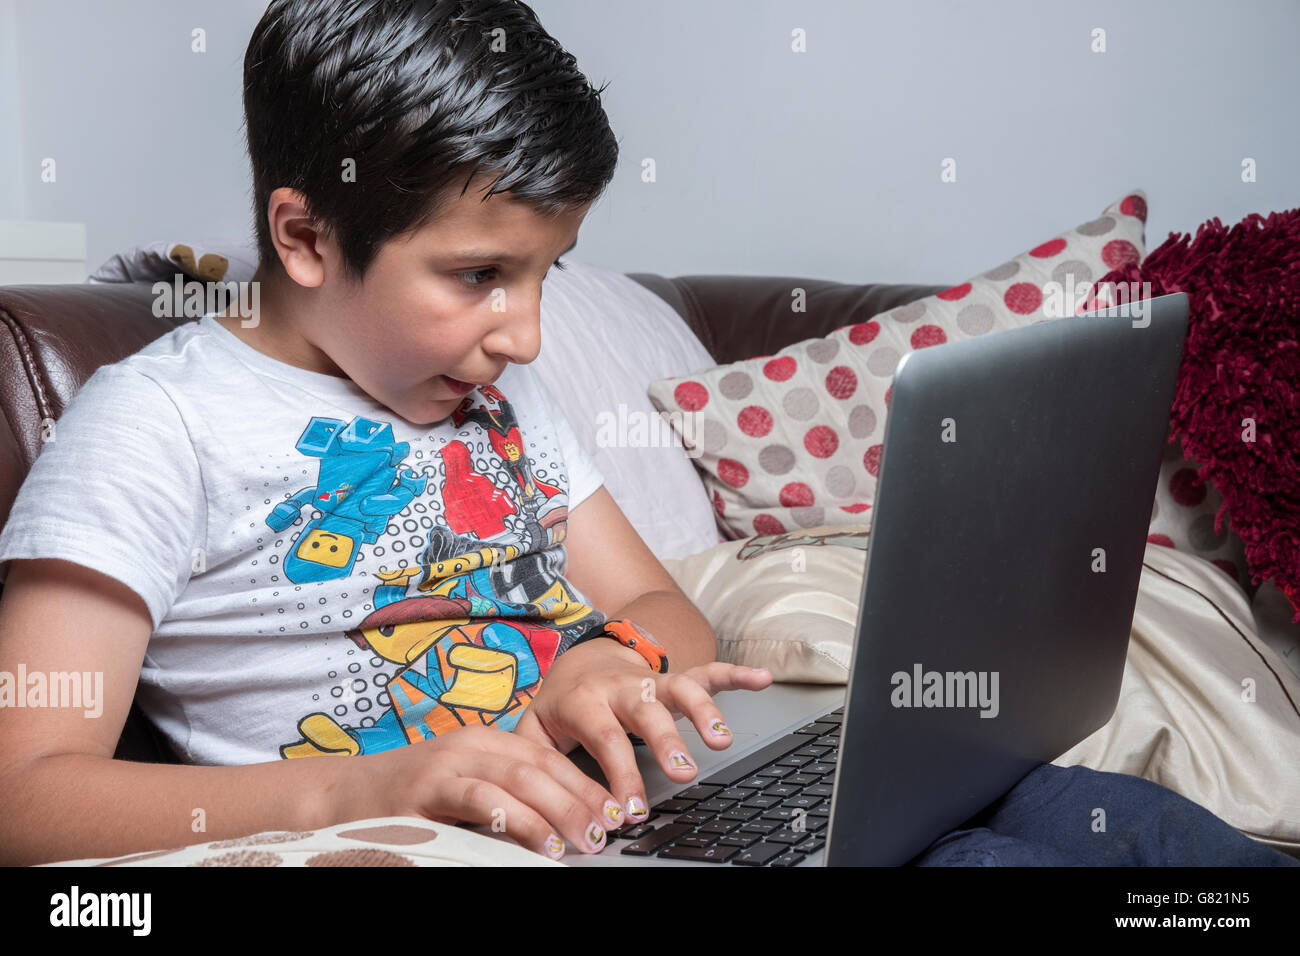 Boy on laptop computer - Stock Image